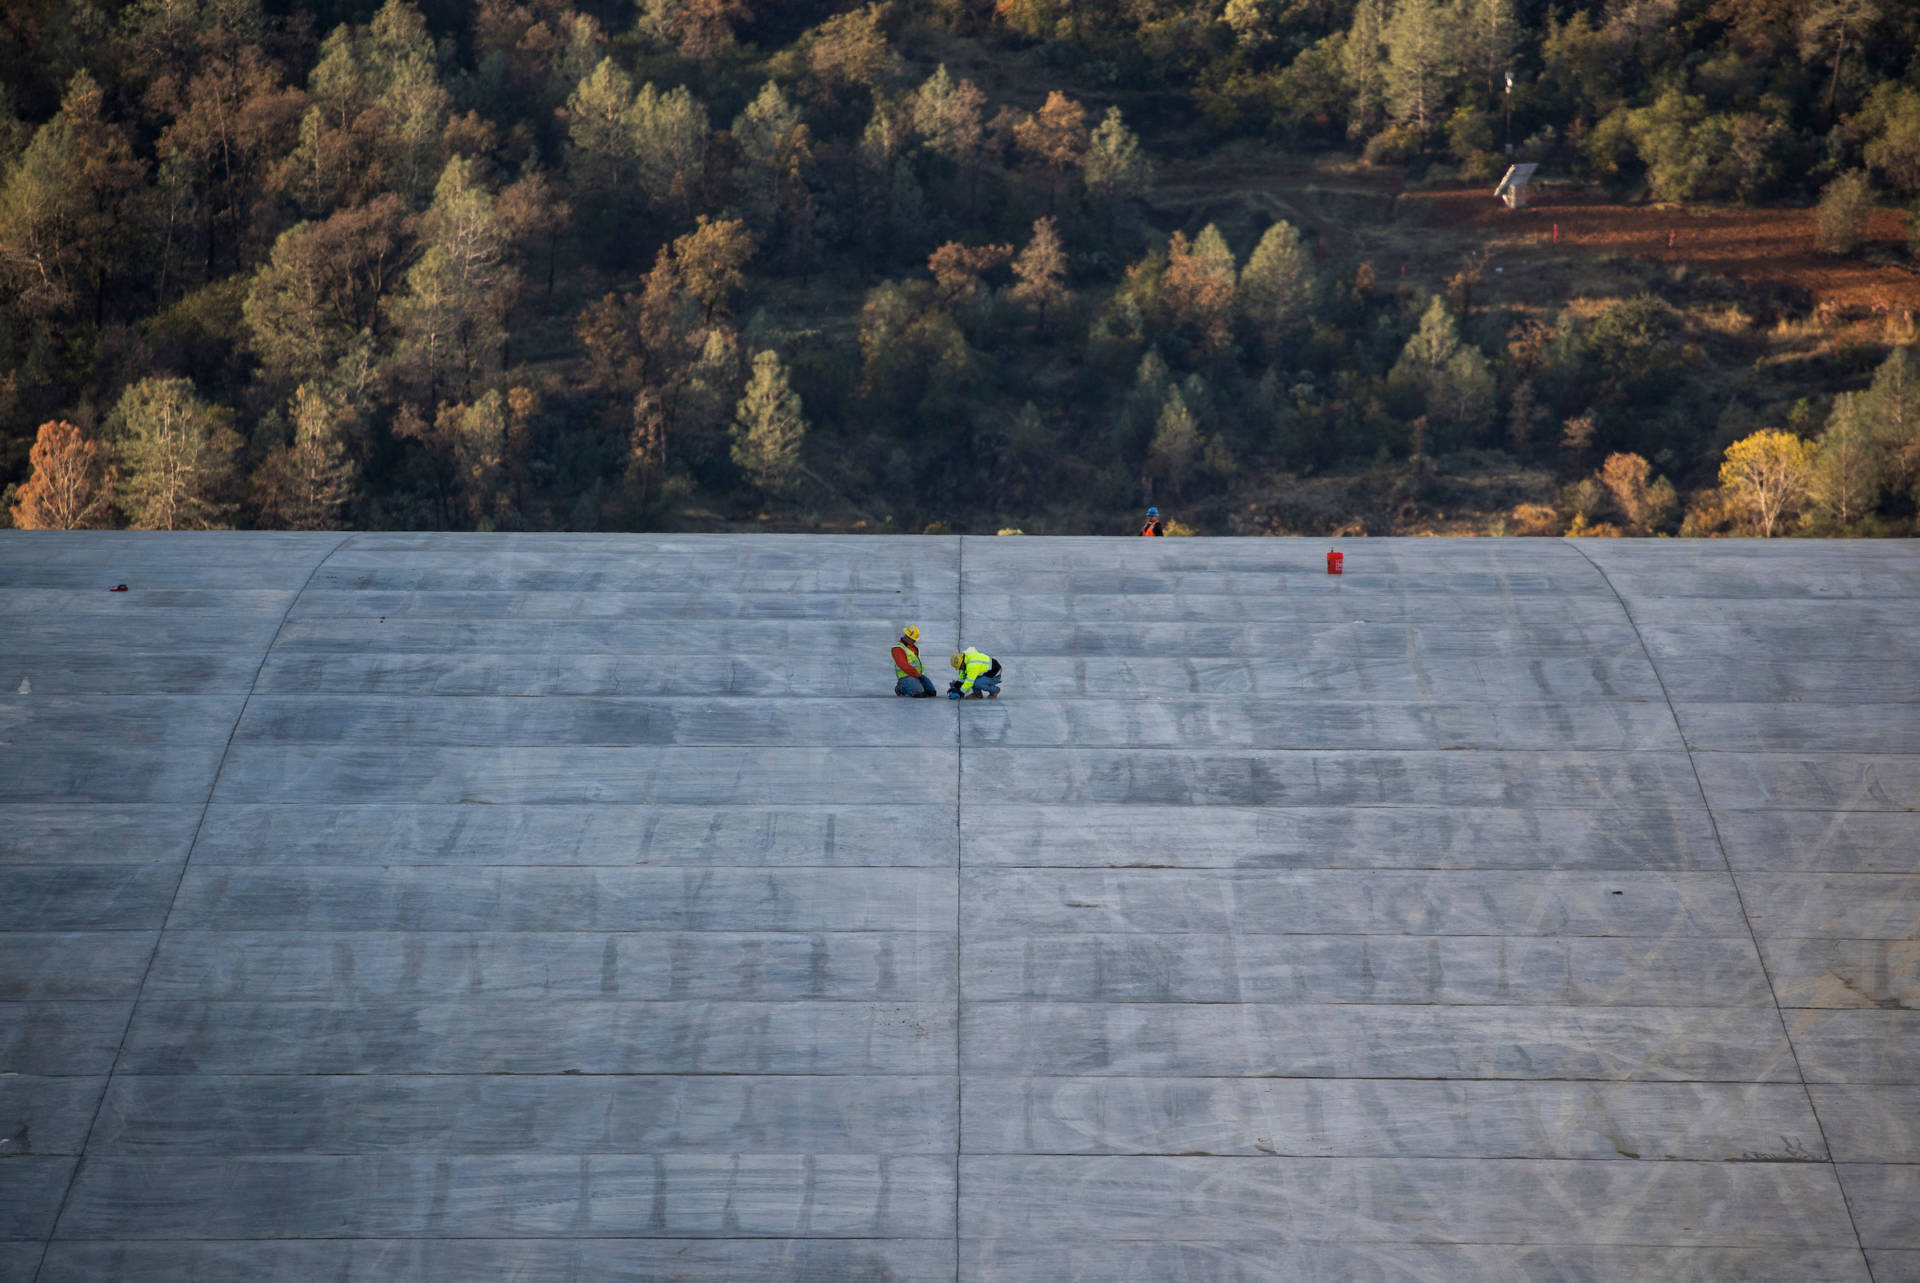 Feds Ask State to Explain Cracks in New Oroville Spillway Concrete